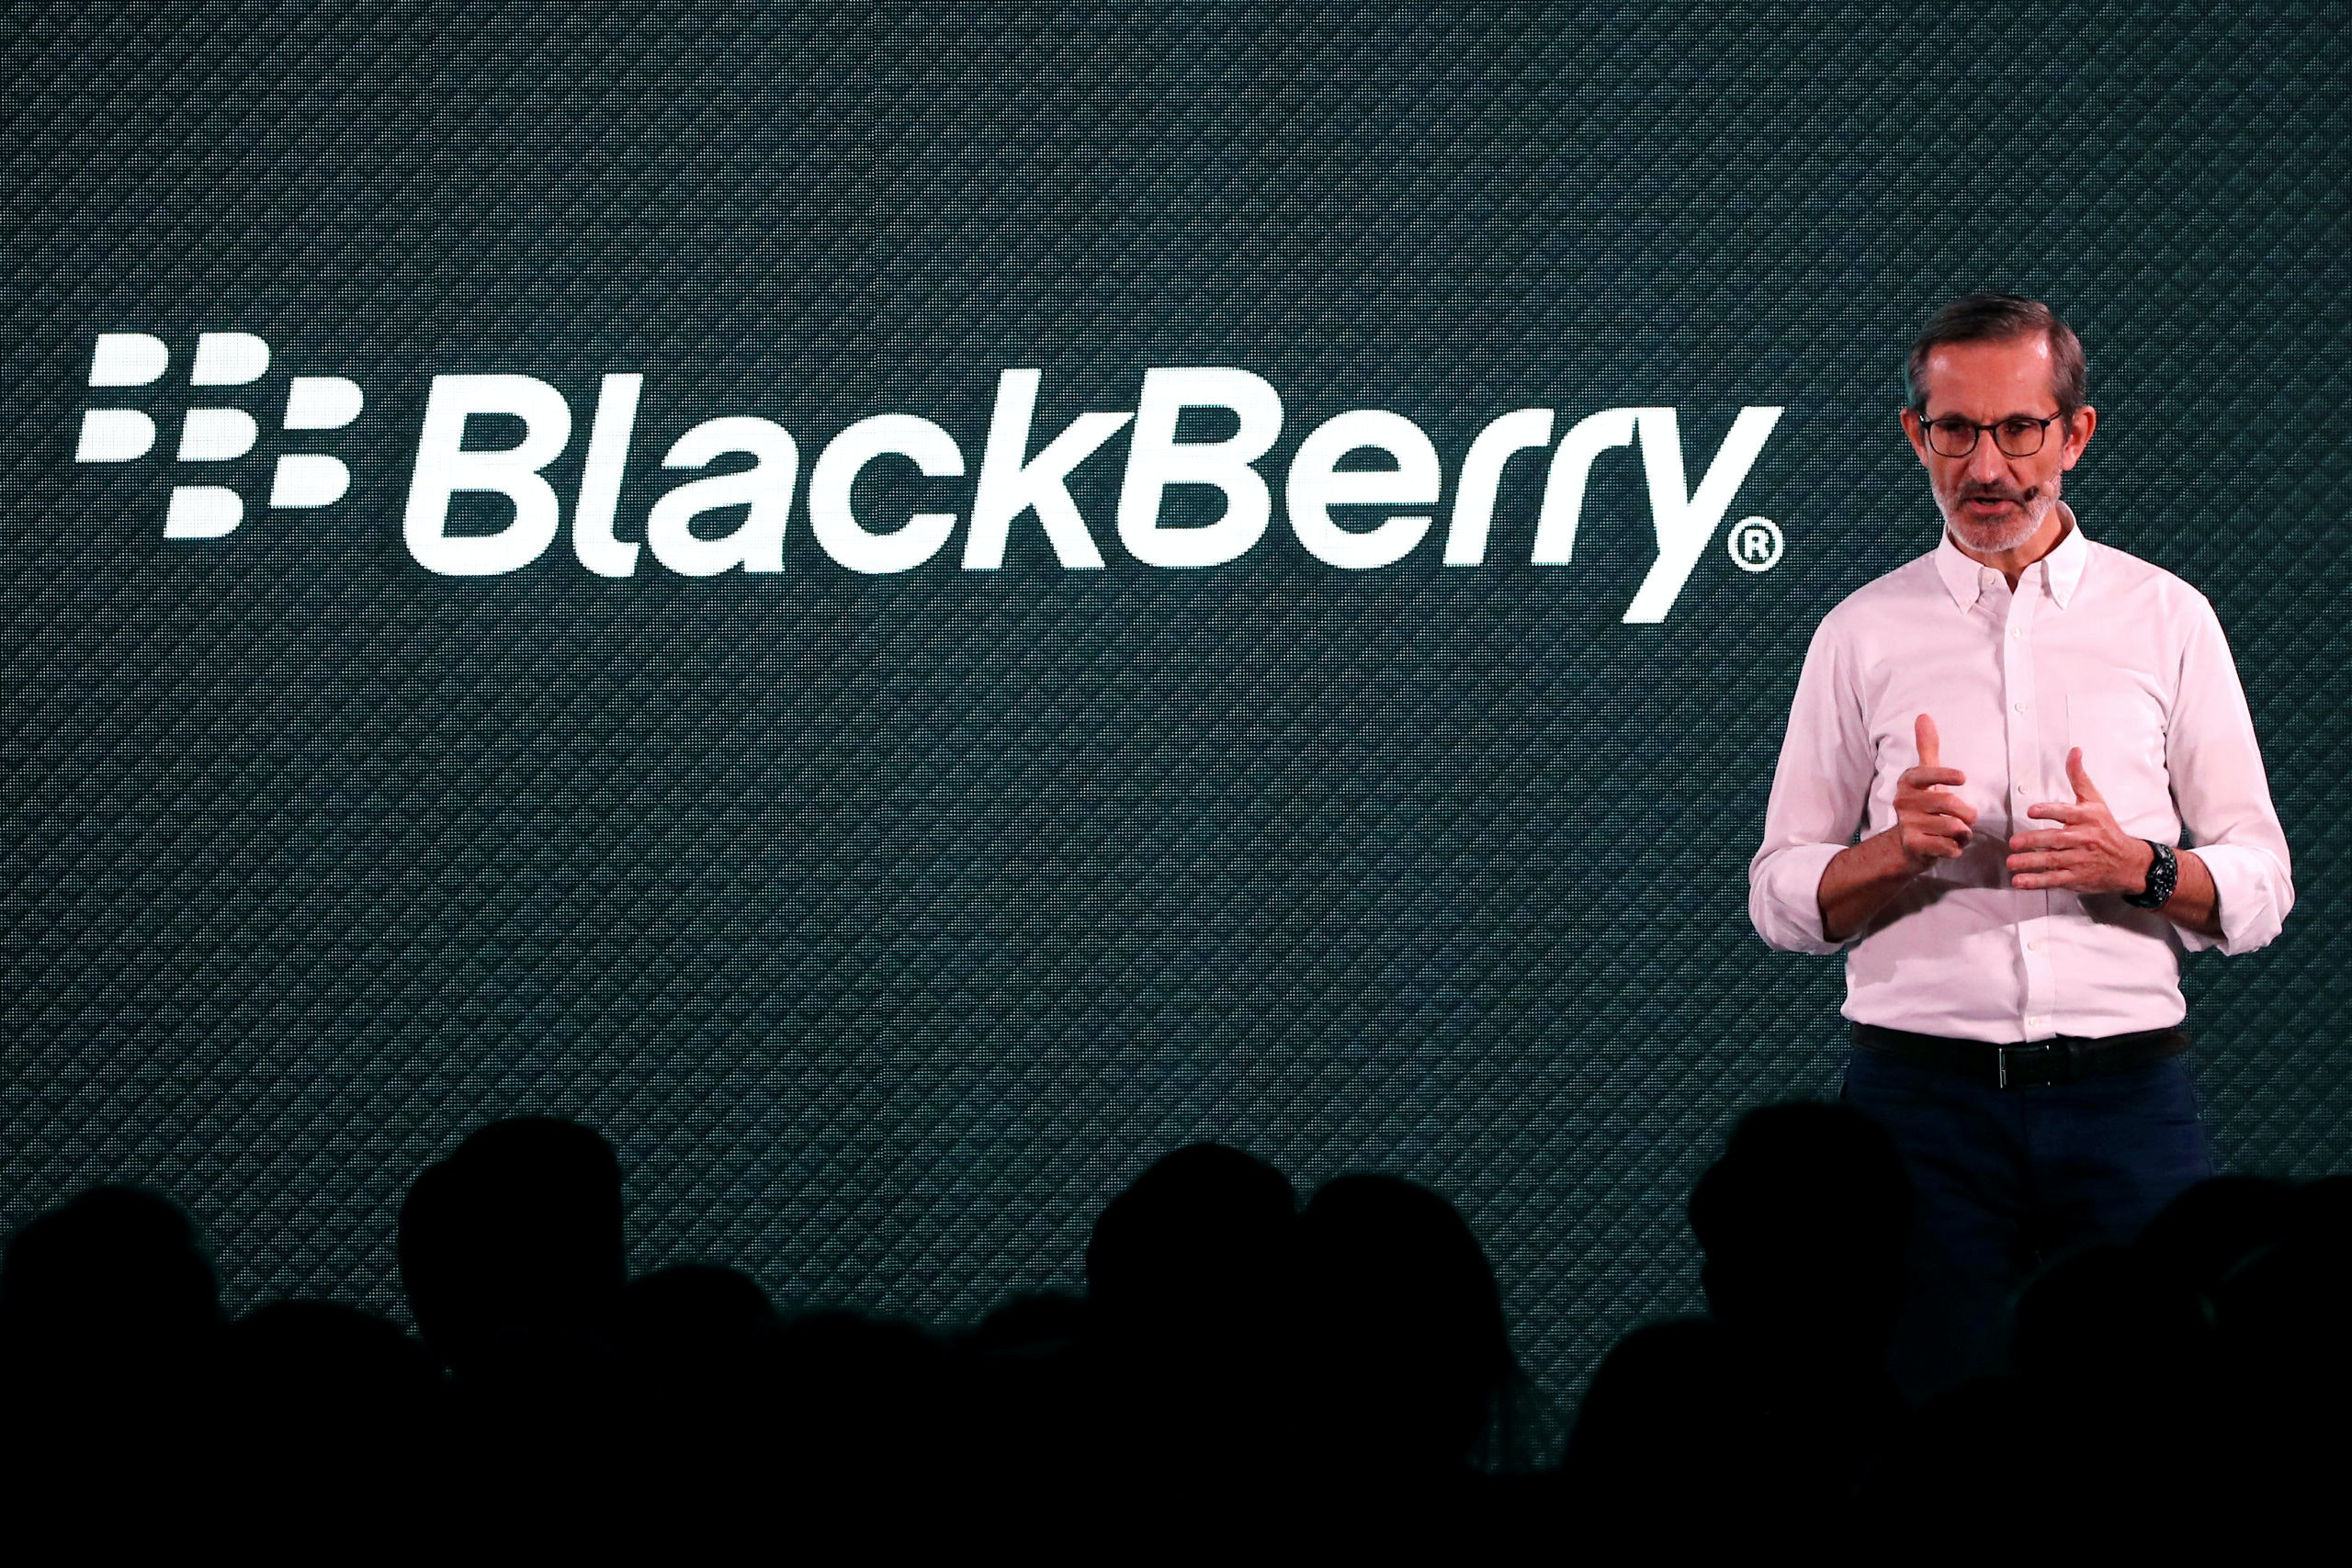 Alain LeJeune, President of Blackberry Mobile at TCL Communication speaks at the introduction the new Blackberry Key2 smartphone during a product launch event for the device in Manhattan in New York, U.S., June 7, 2018. REUTERS/Mike Segar